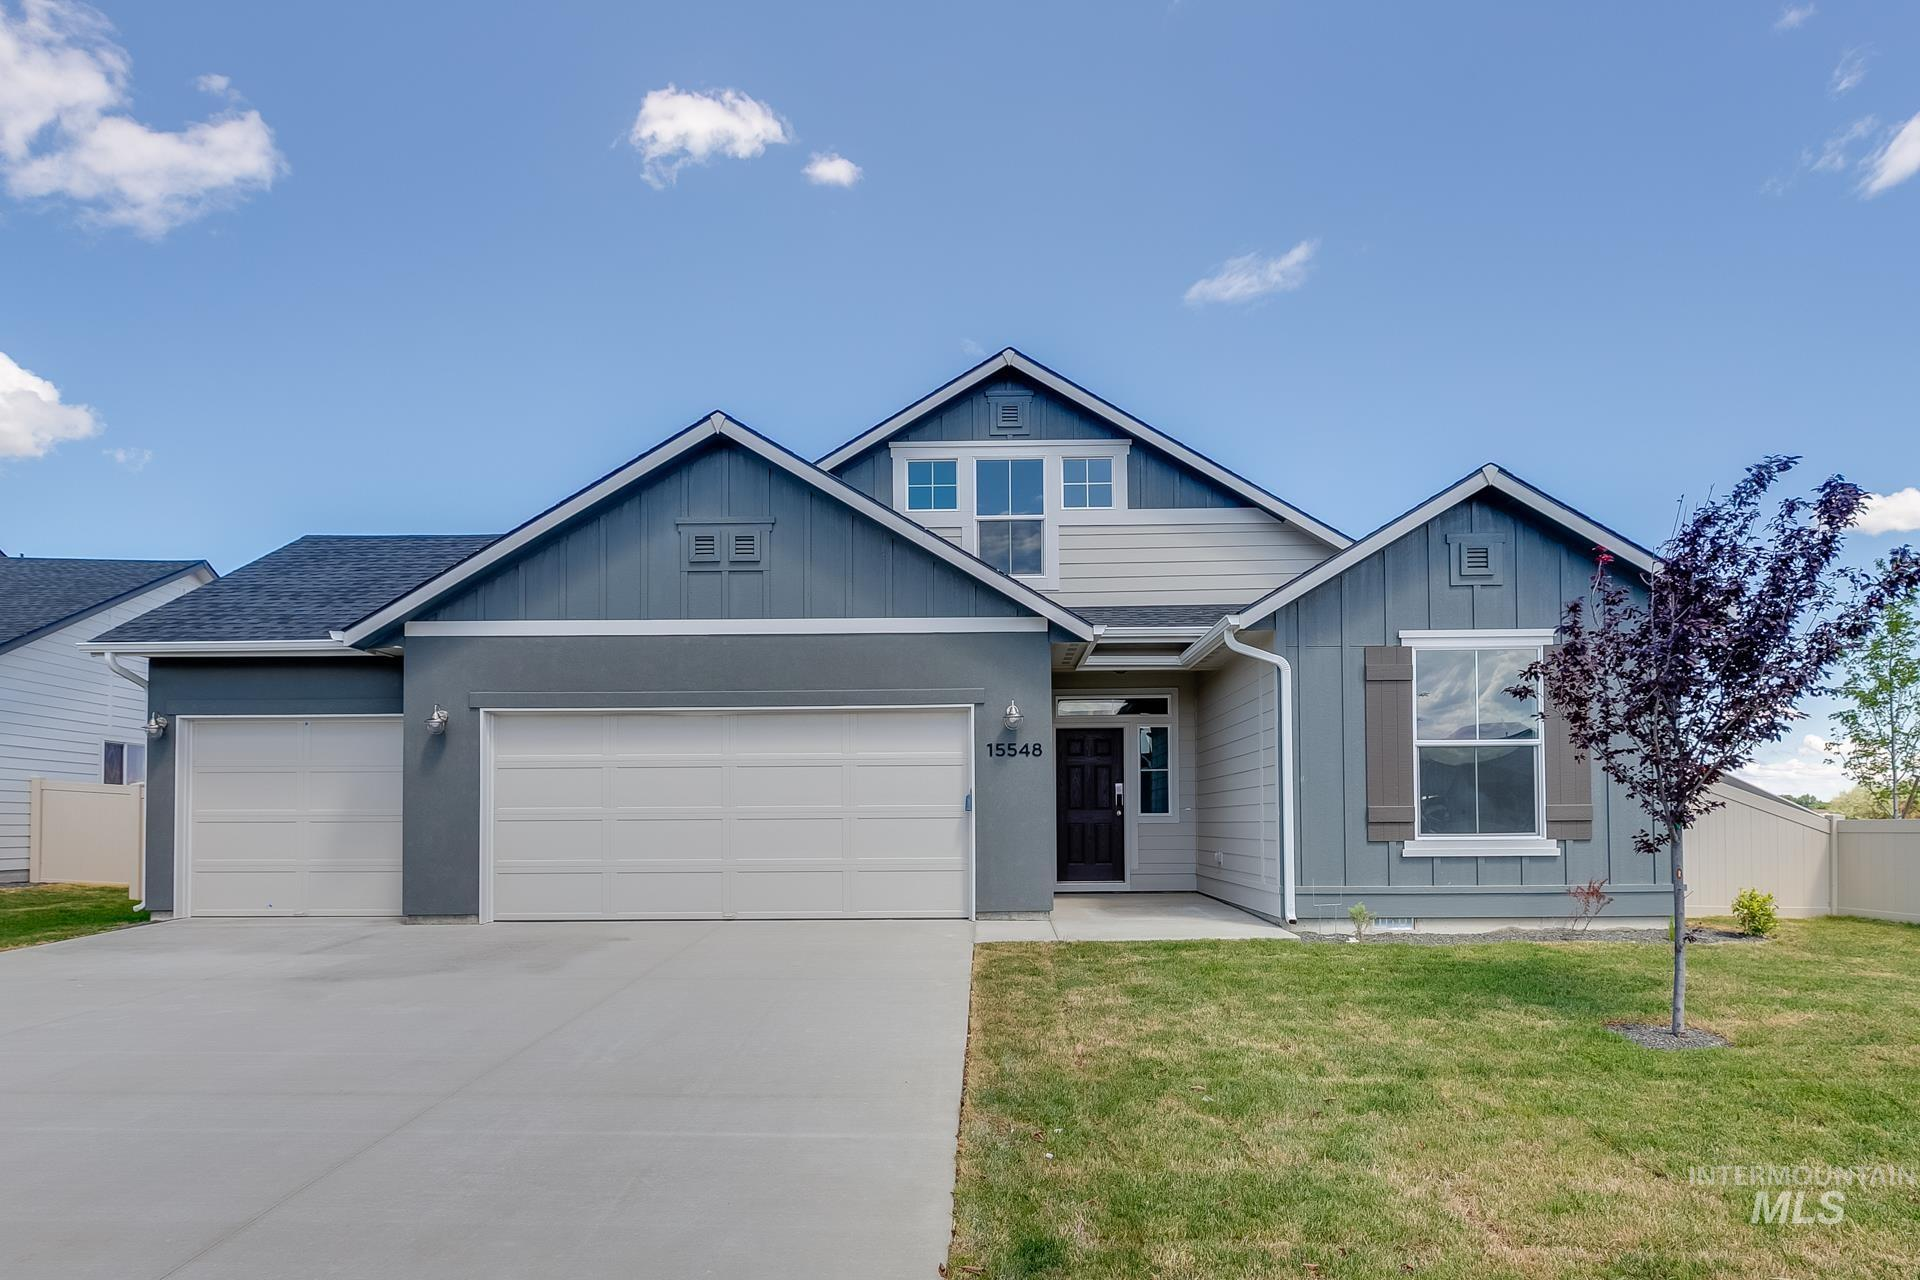 2273 N Meadowhills Ave Property Photo - Star, ID real estate listing